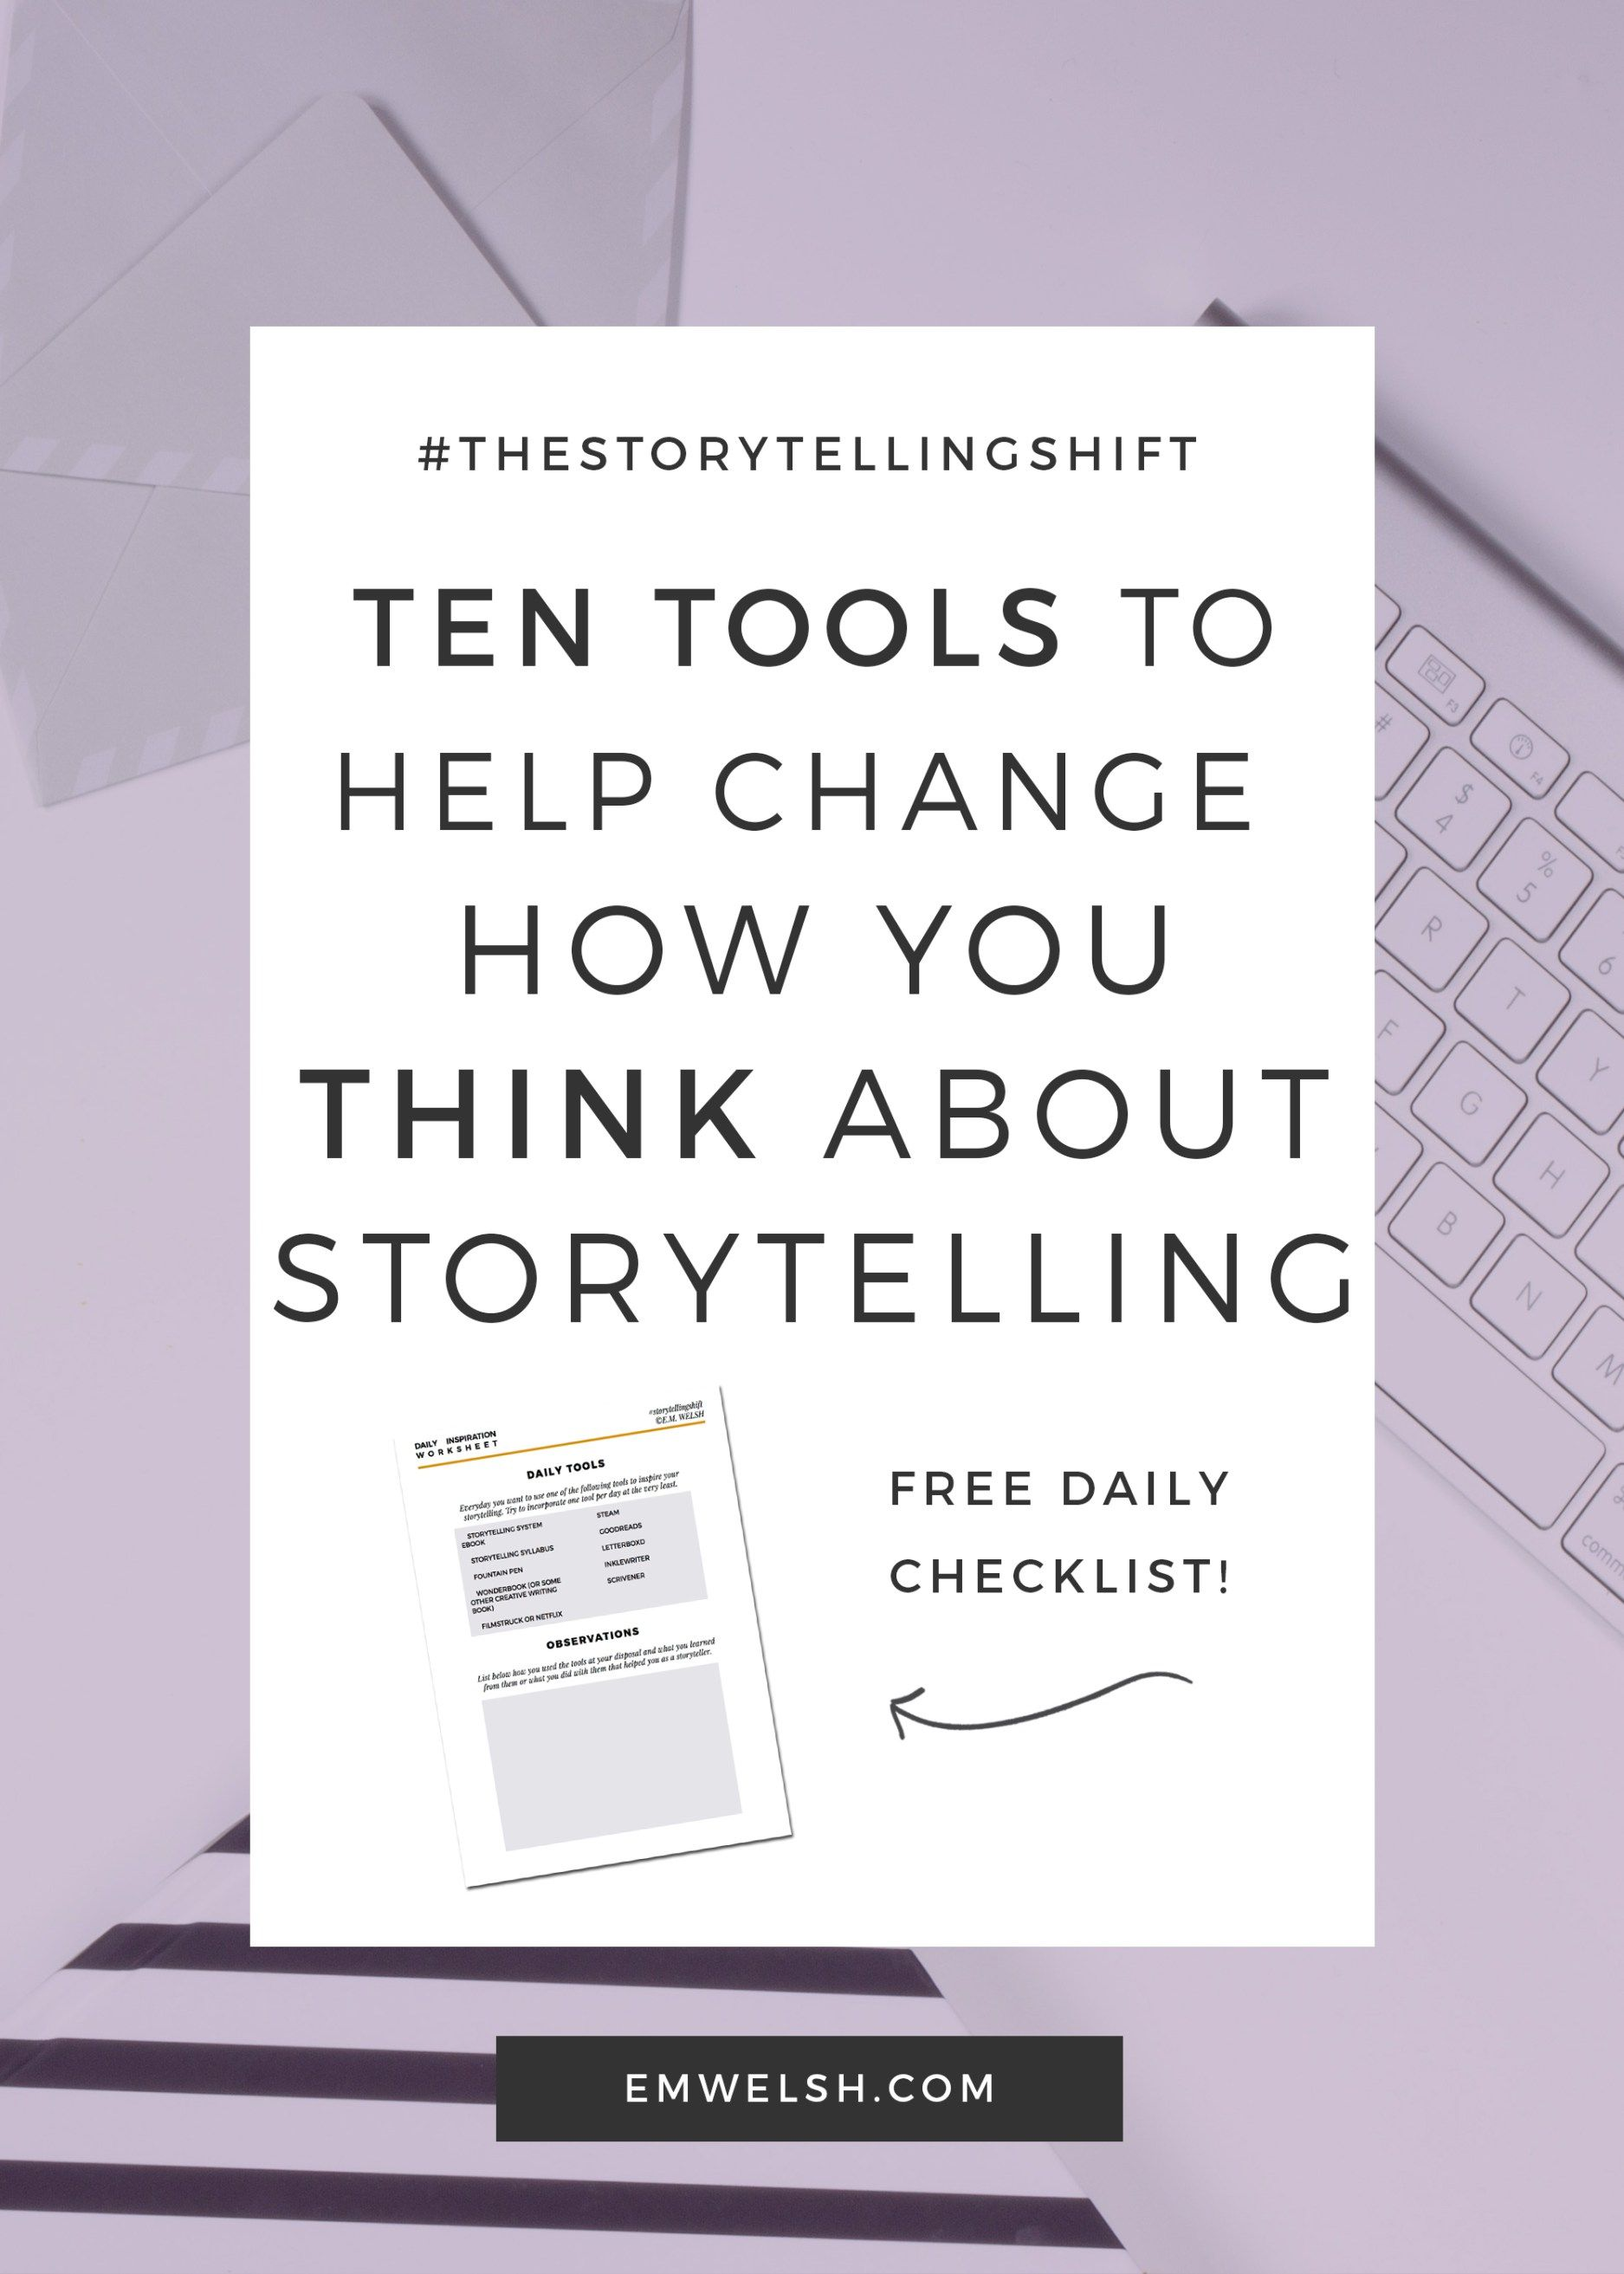 Ten Tools To Help Change How You Think About Storytelling